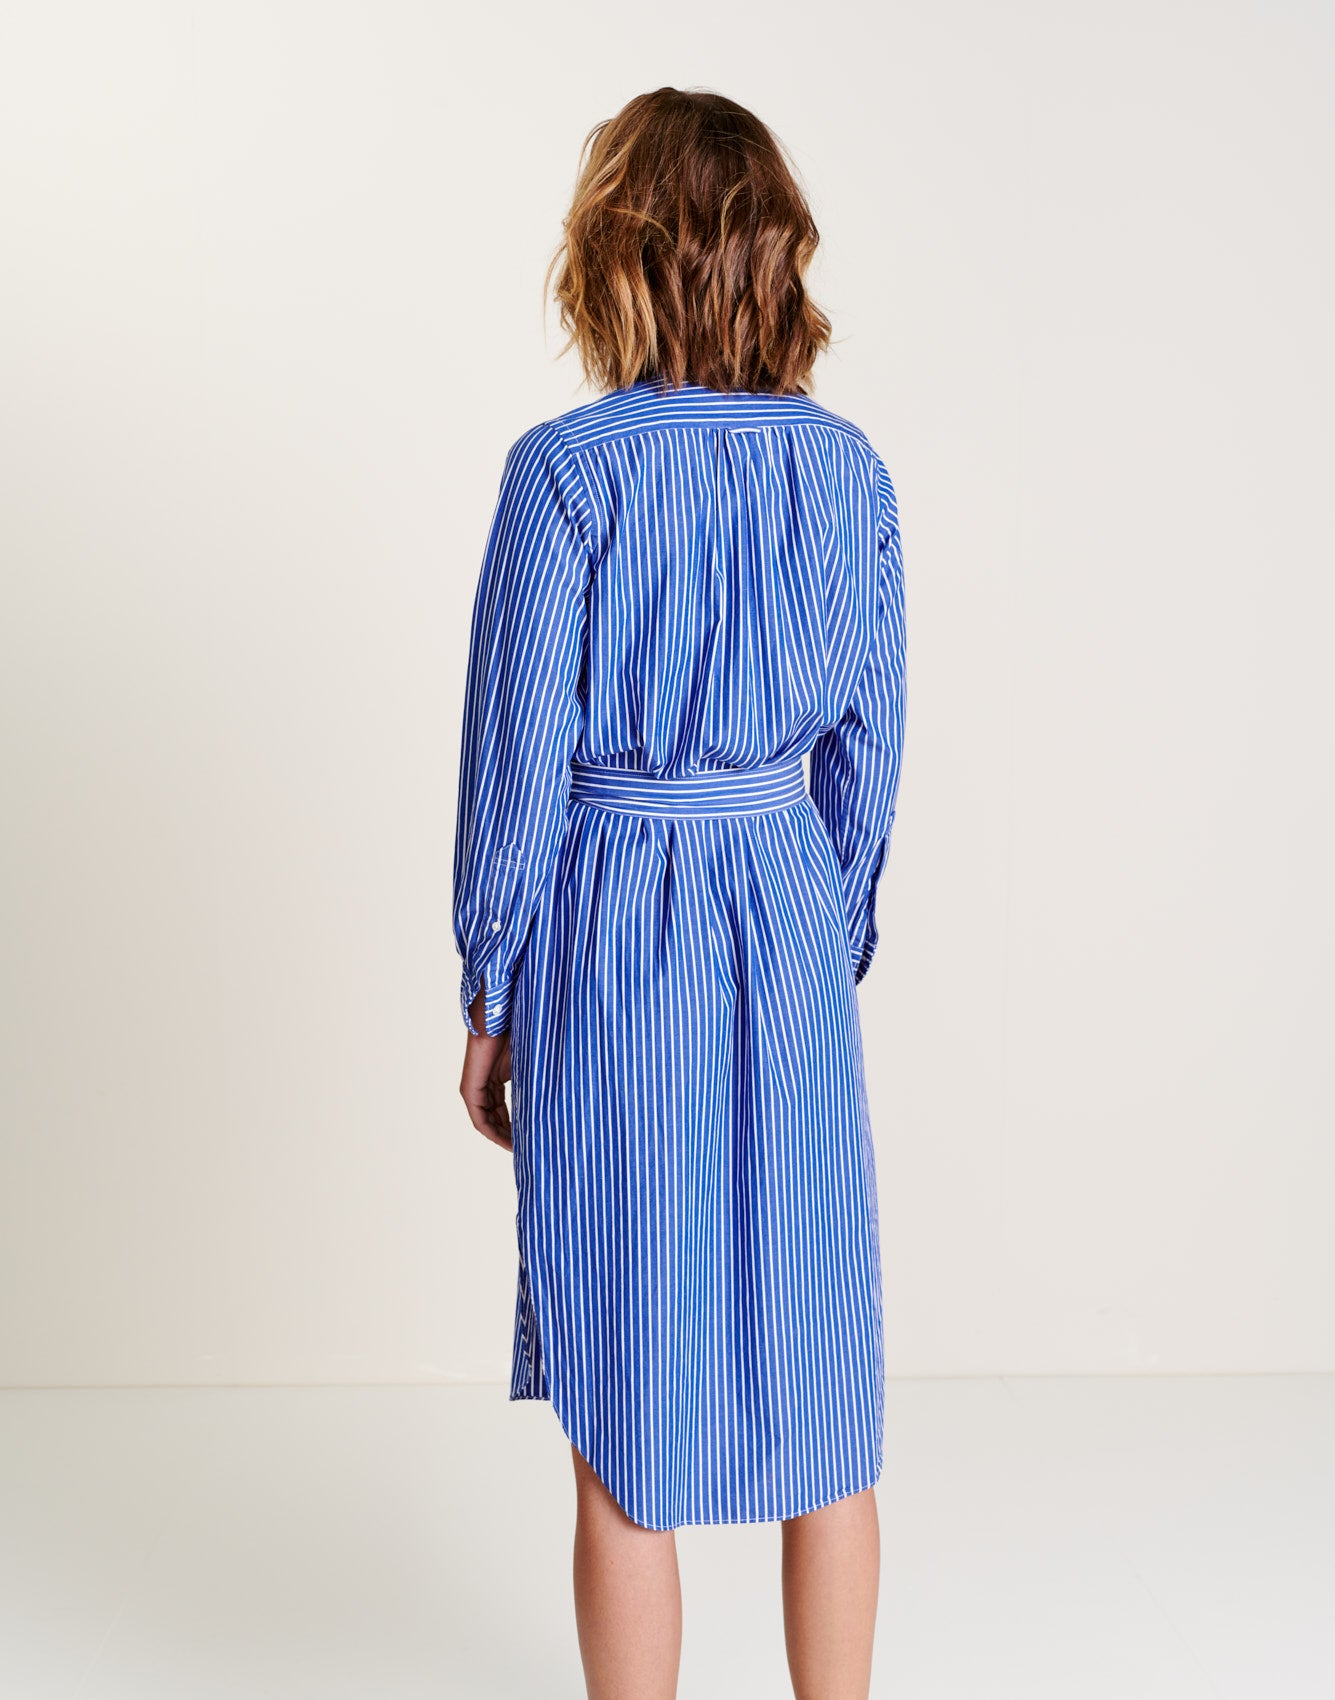 Bellerose | GEORGES DRESS